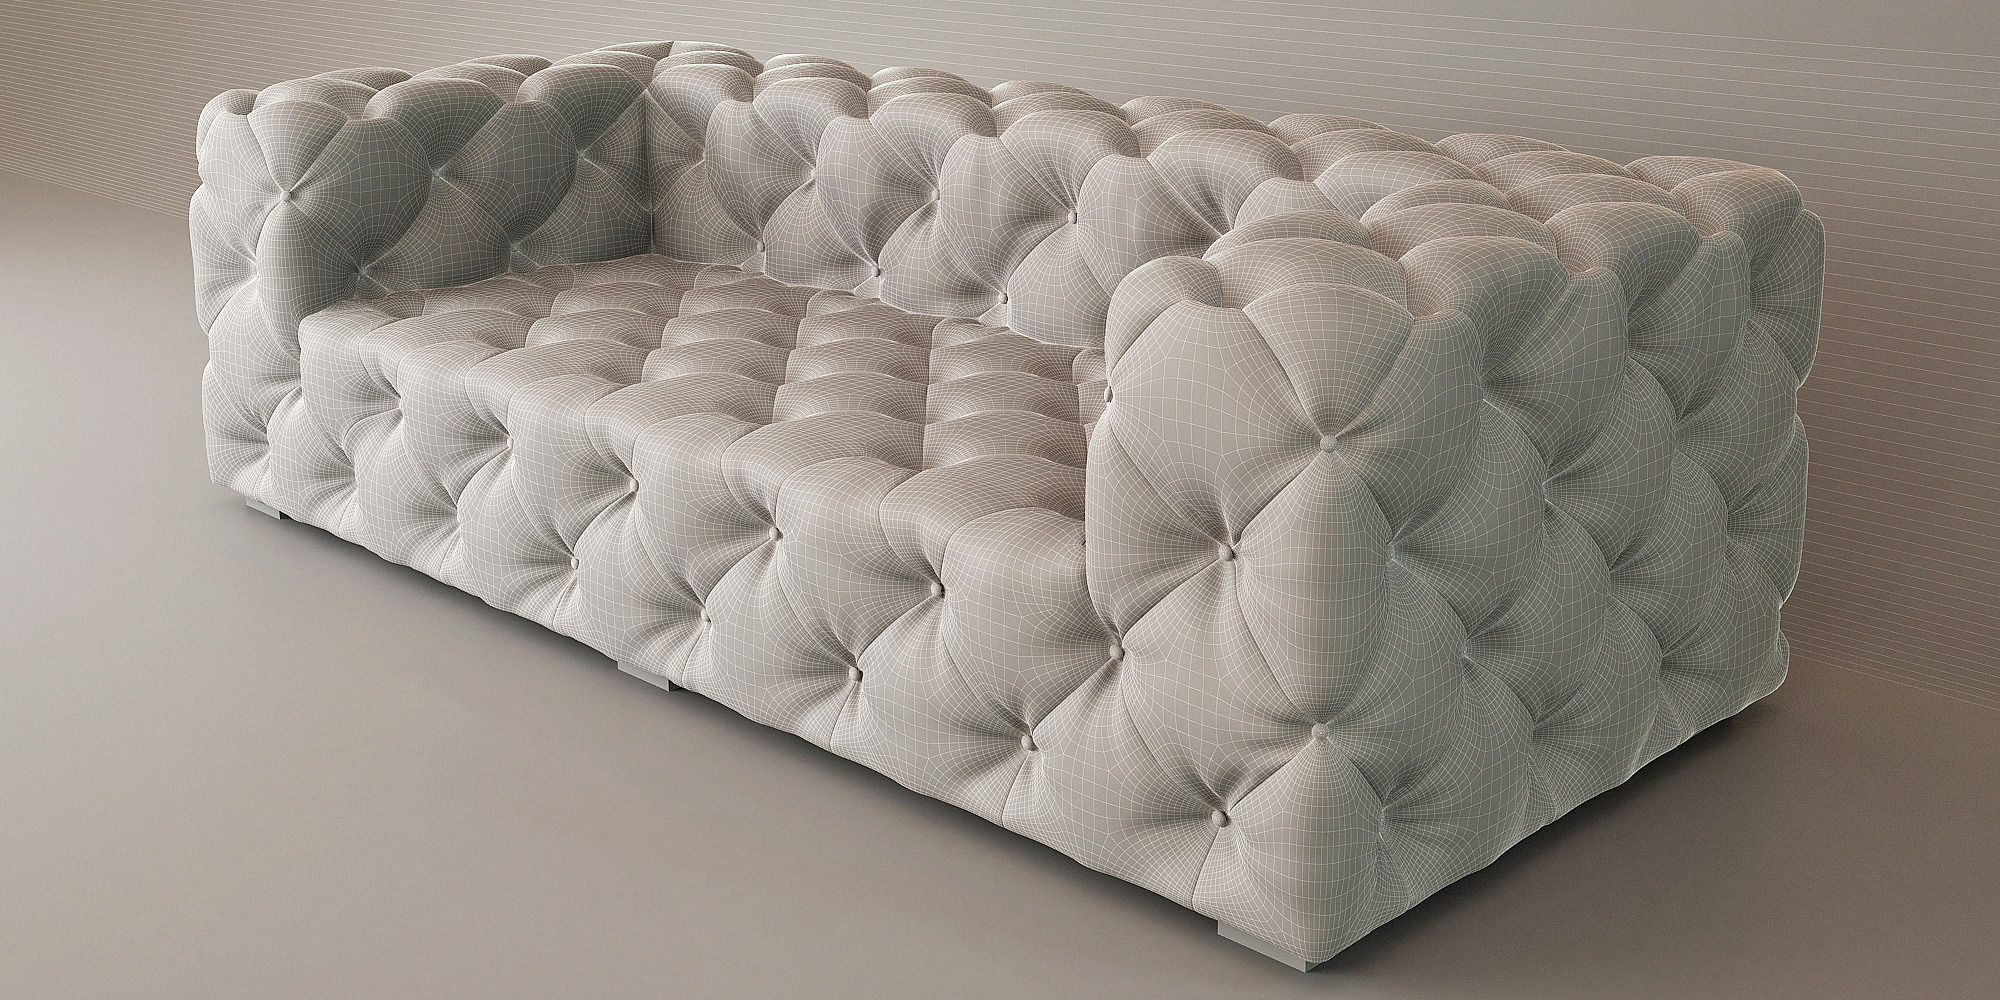 Soho Tufted Leather Sofa Model Max Fbx 2